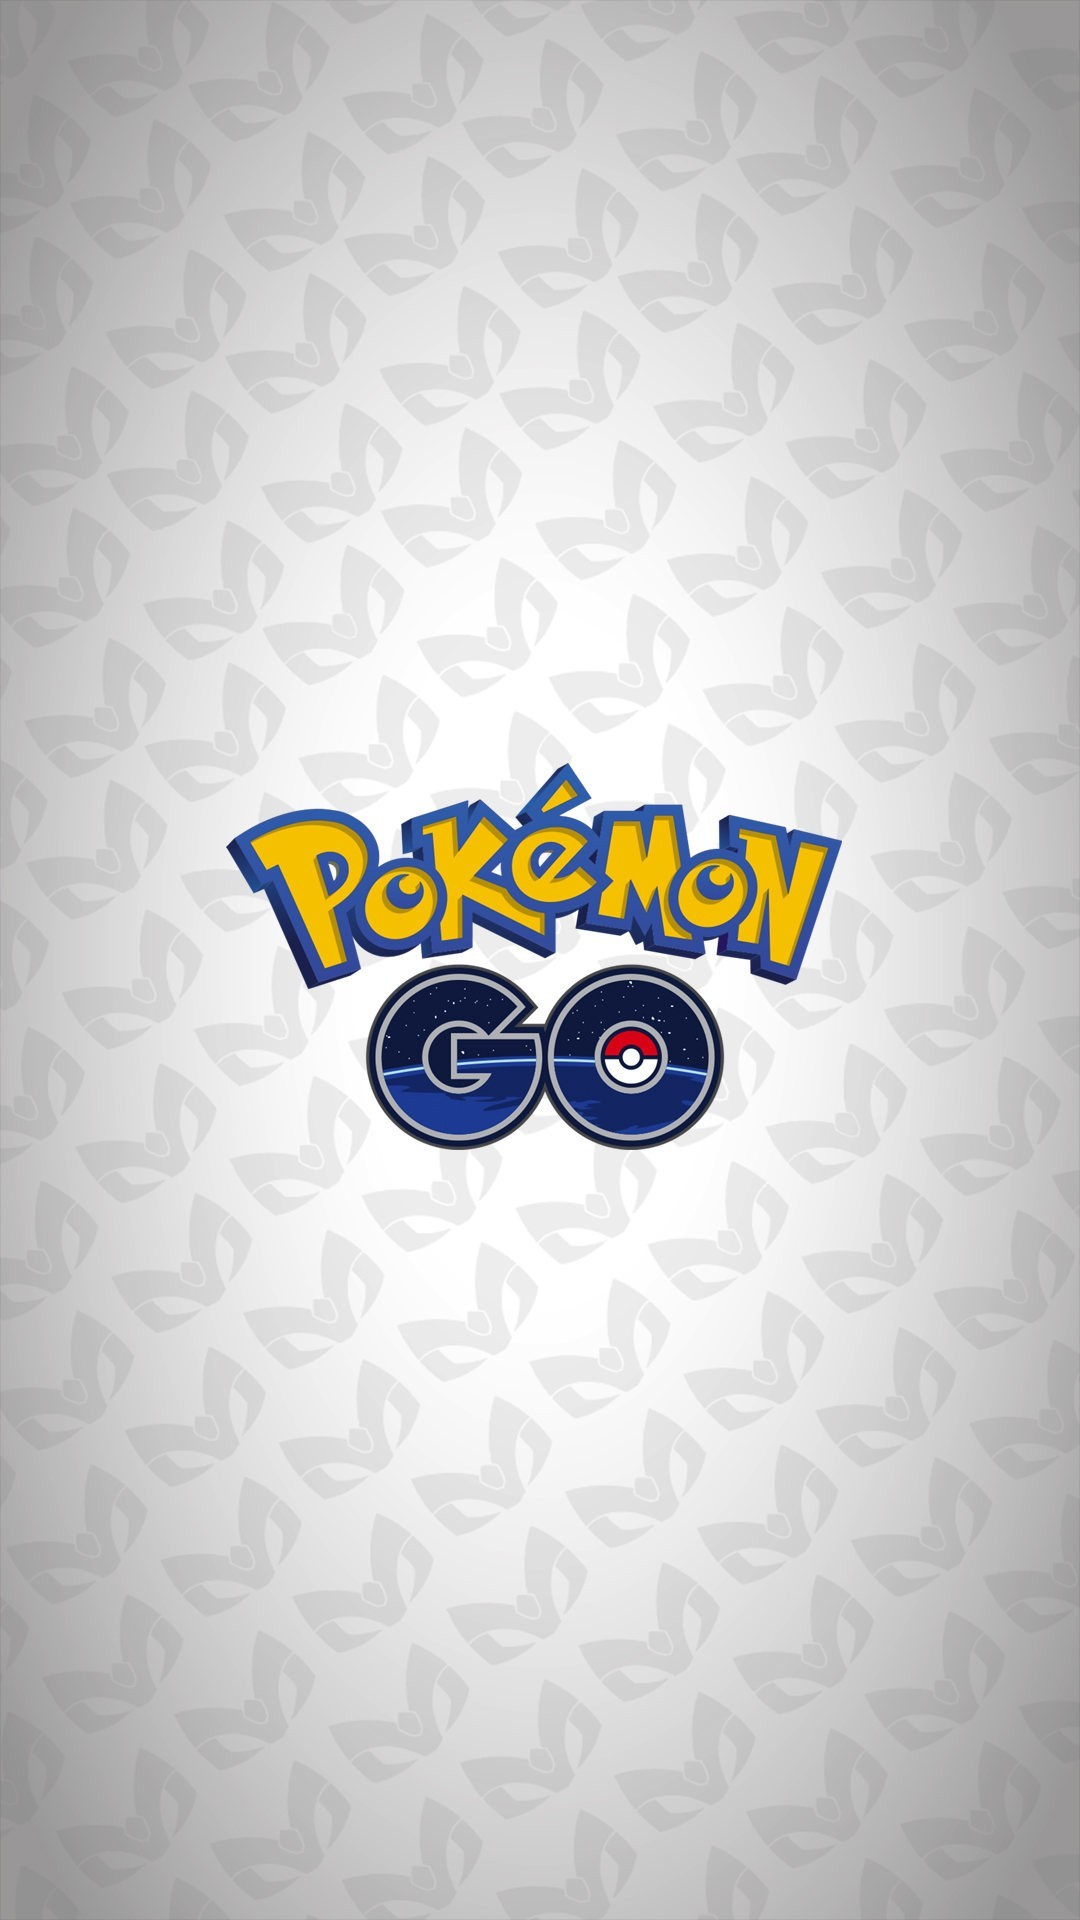 Pokemon Wallpaper Black And White Pokemon Go Hd Wallpapers For Iphone 6s Plus Wallpapers